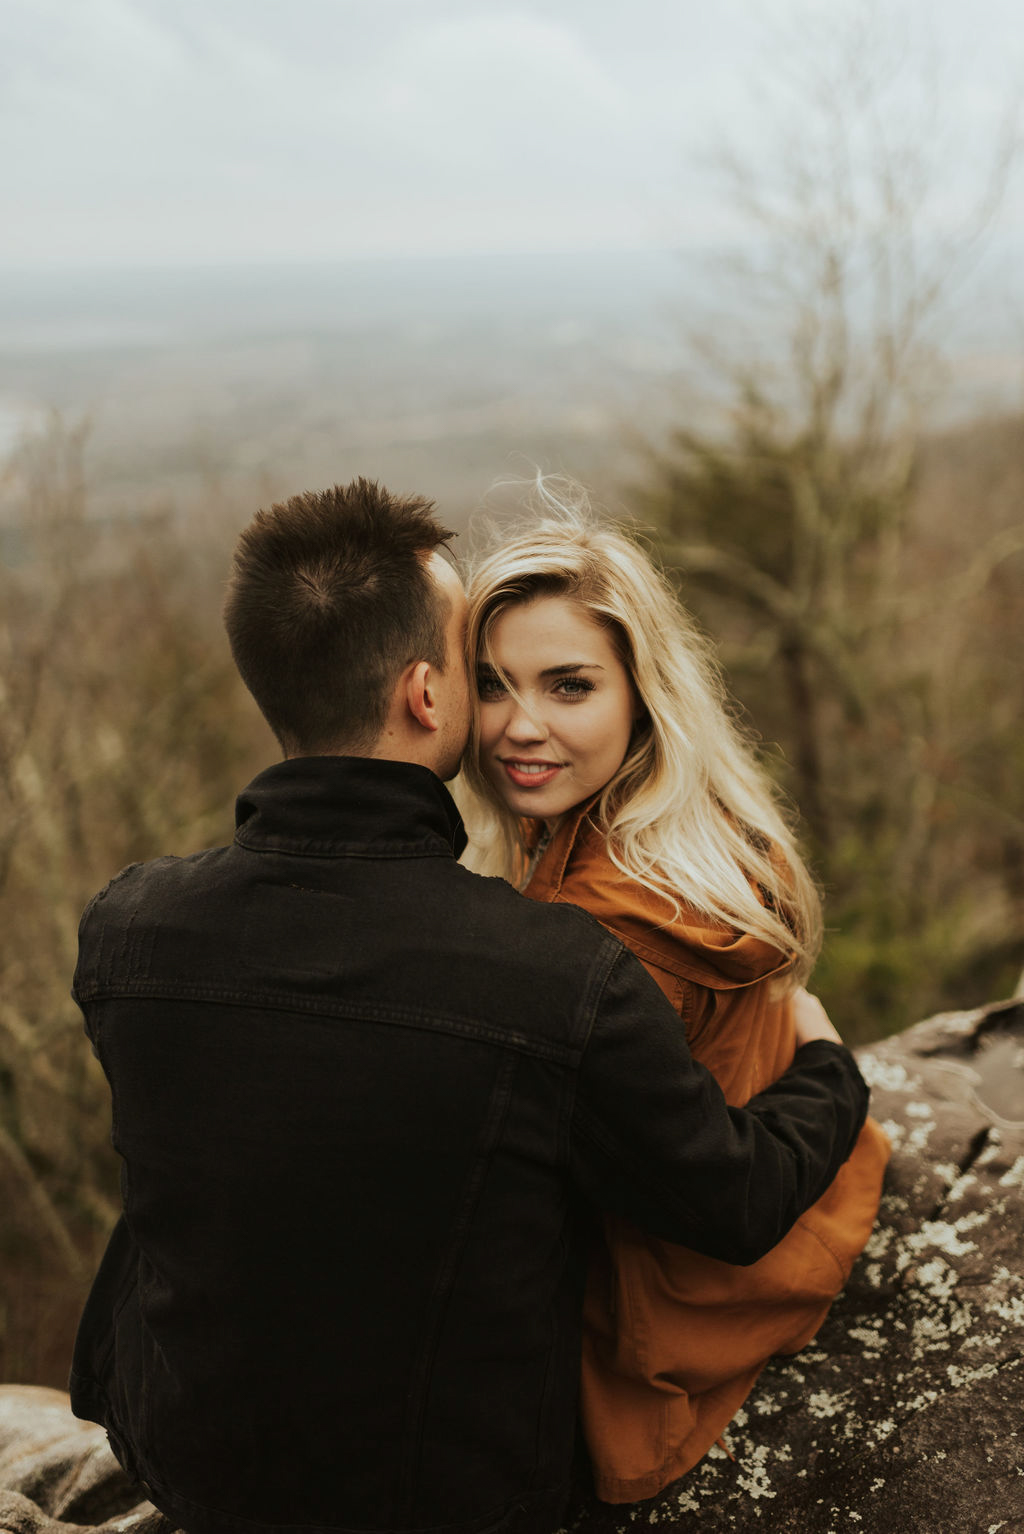 adventurous engagement session at a boulder field in alabama 26.jpg